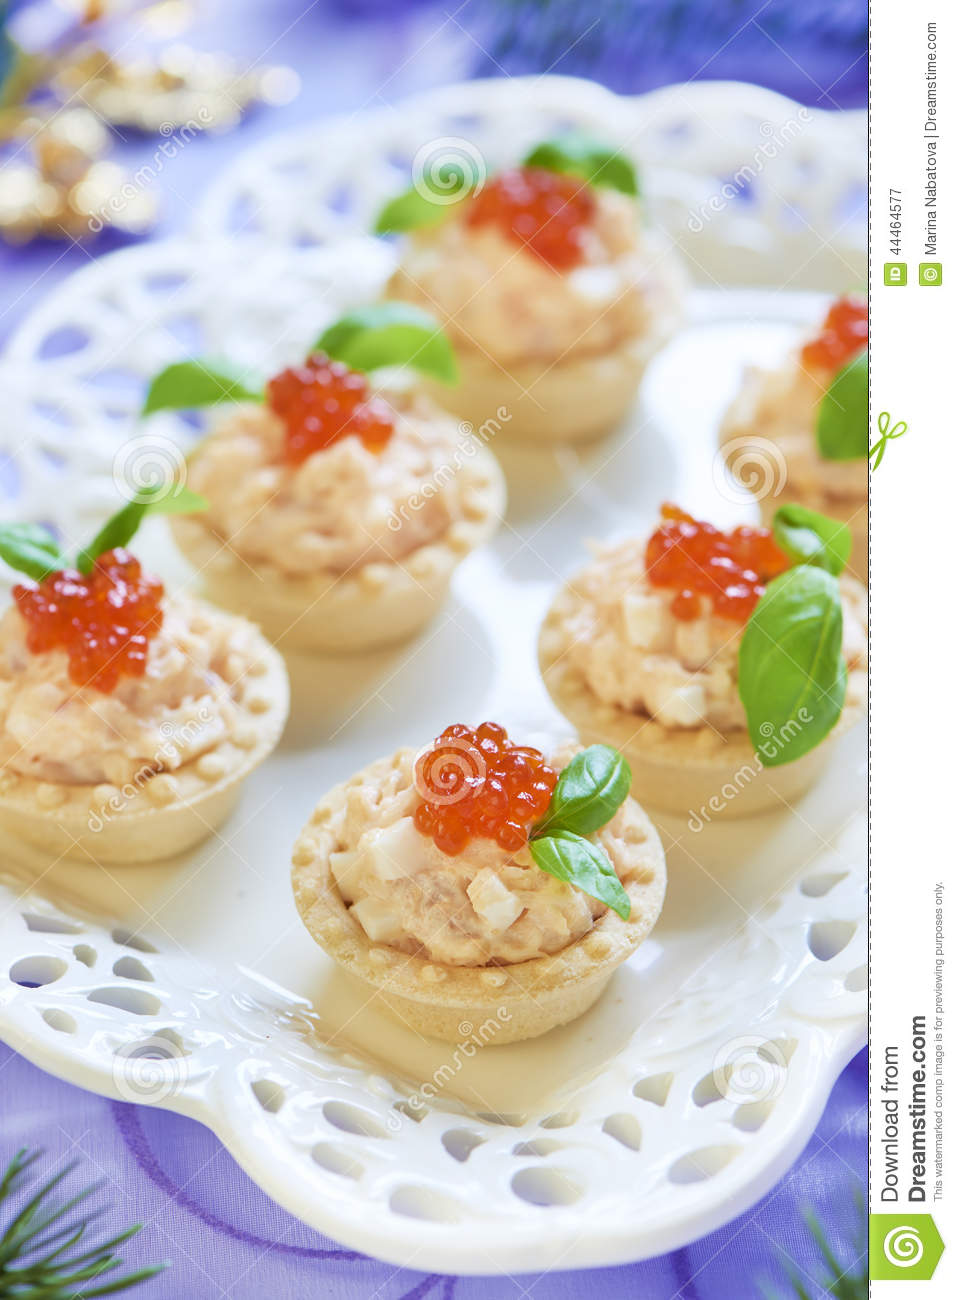 Download Tartlets With Seafood Salad, Red Caviar And Basil Stock Image - Image of platter, christmas: 44464577